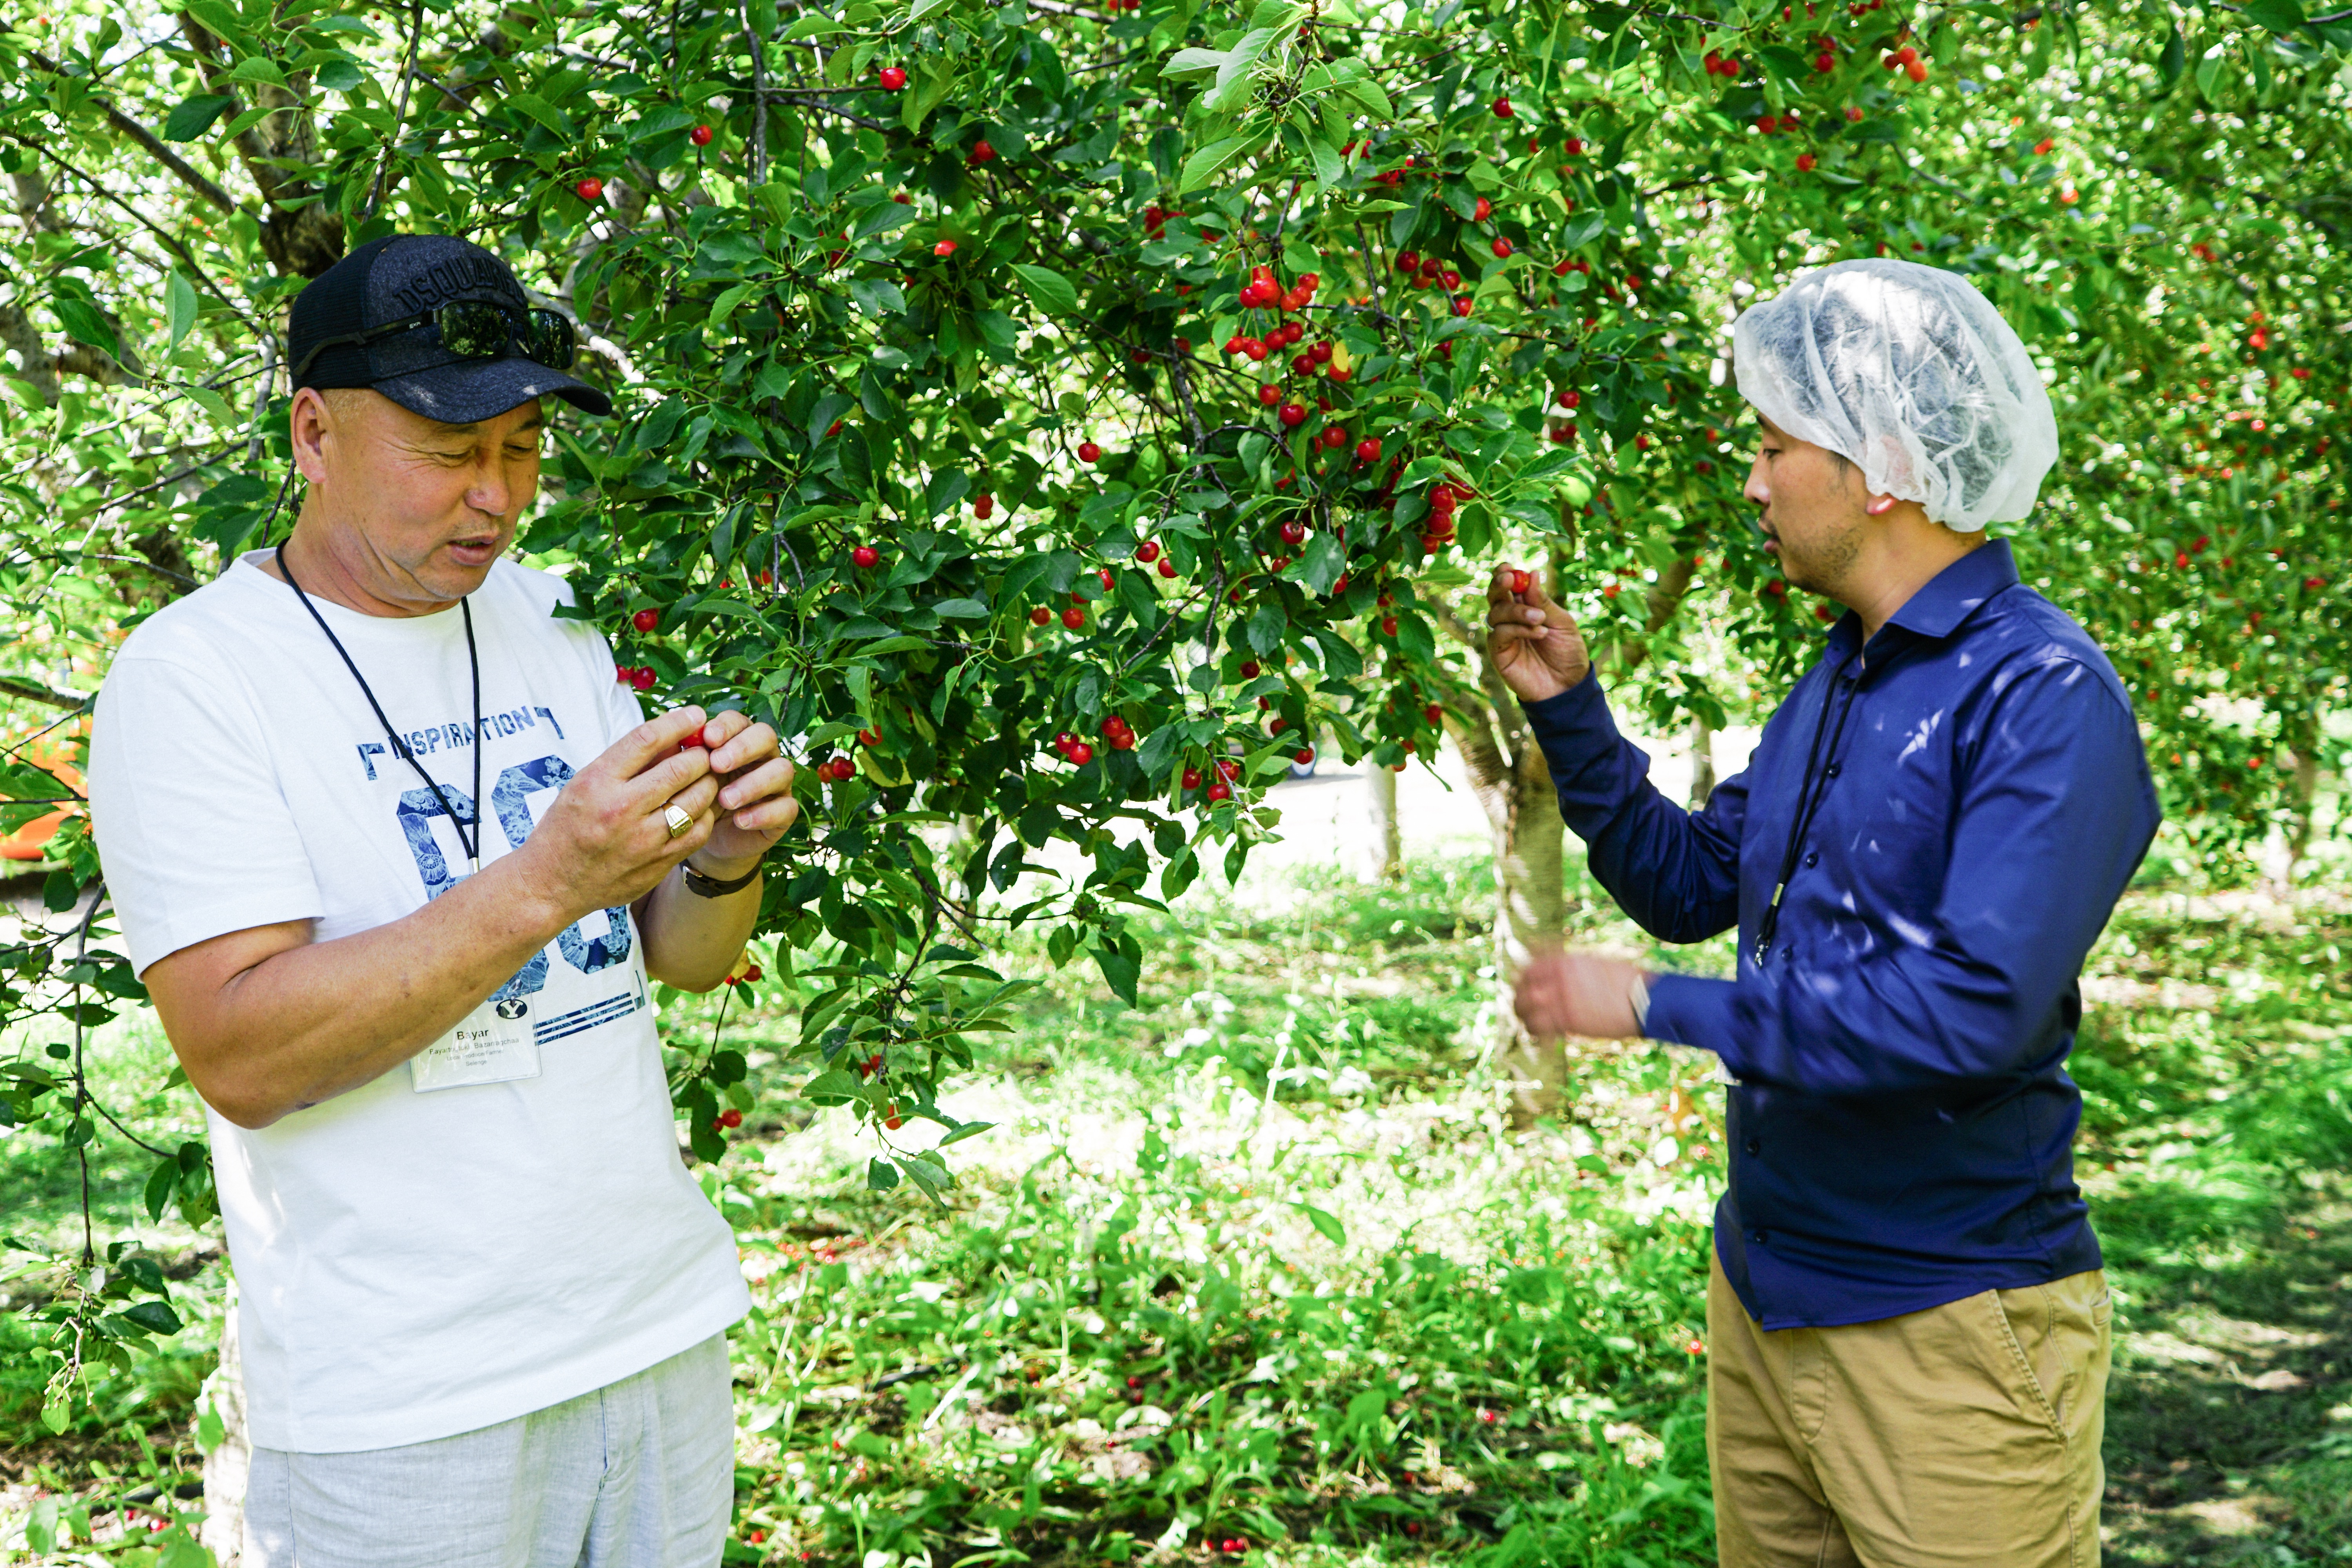 Members of the Mongolian delegation visiting BYU as part of an ongoing partnership to improve food preservation systems in Mongolia visit a fruit farm in Utah during their visit in August 2019.